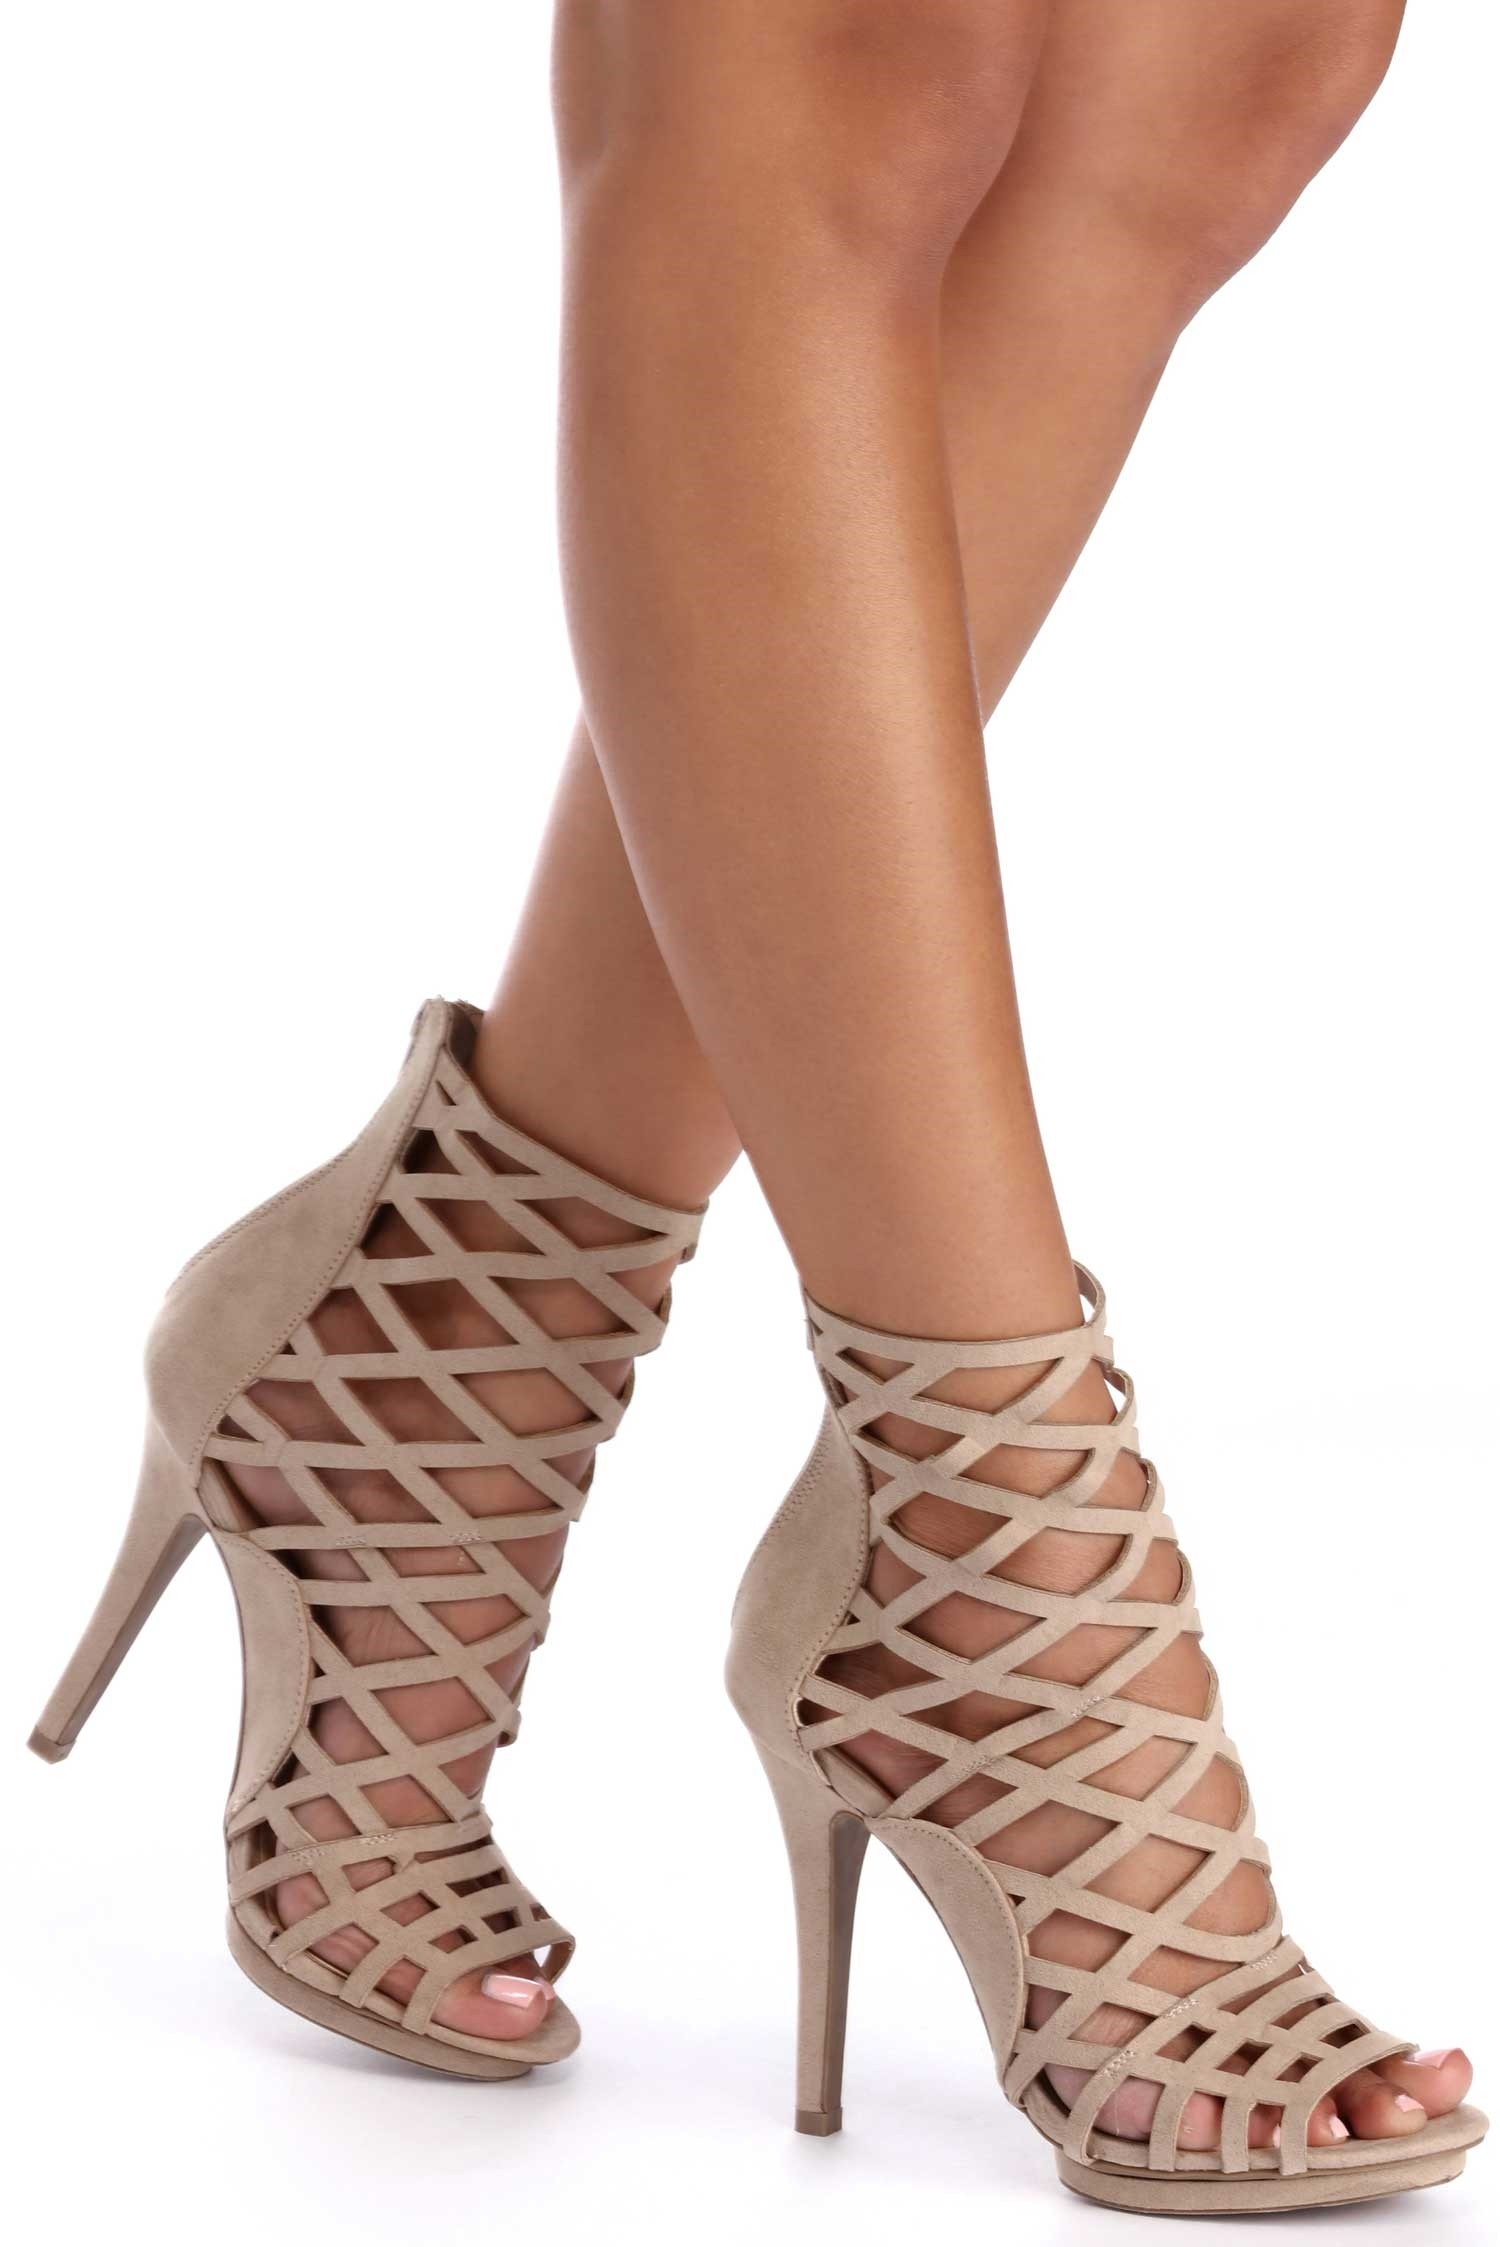 Strappy Heels CwjzbS1h